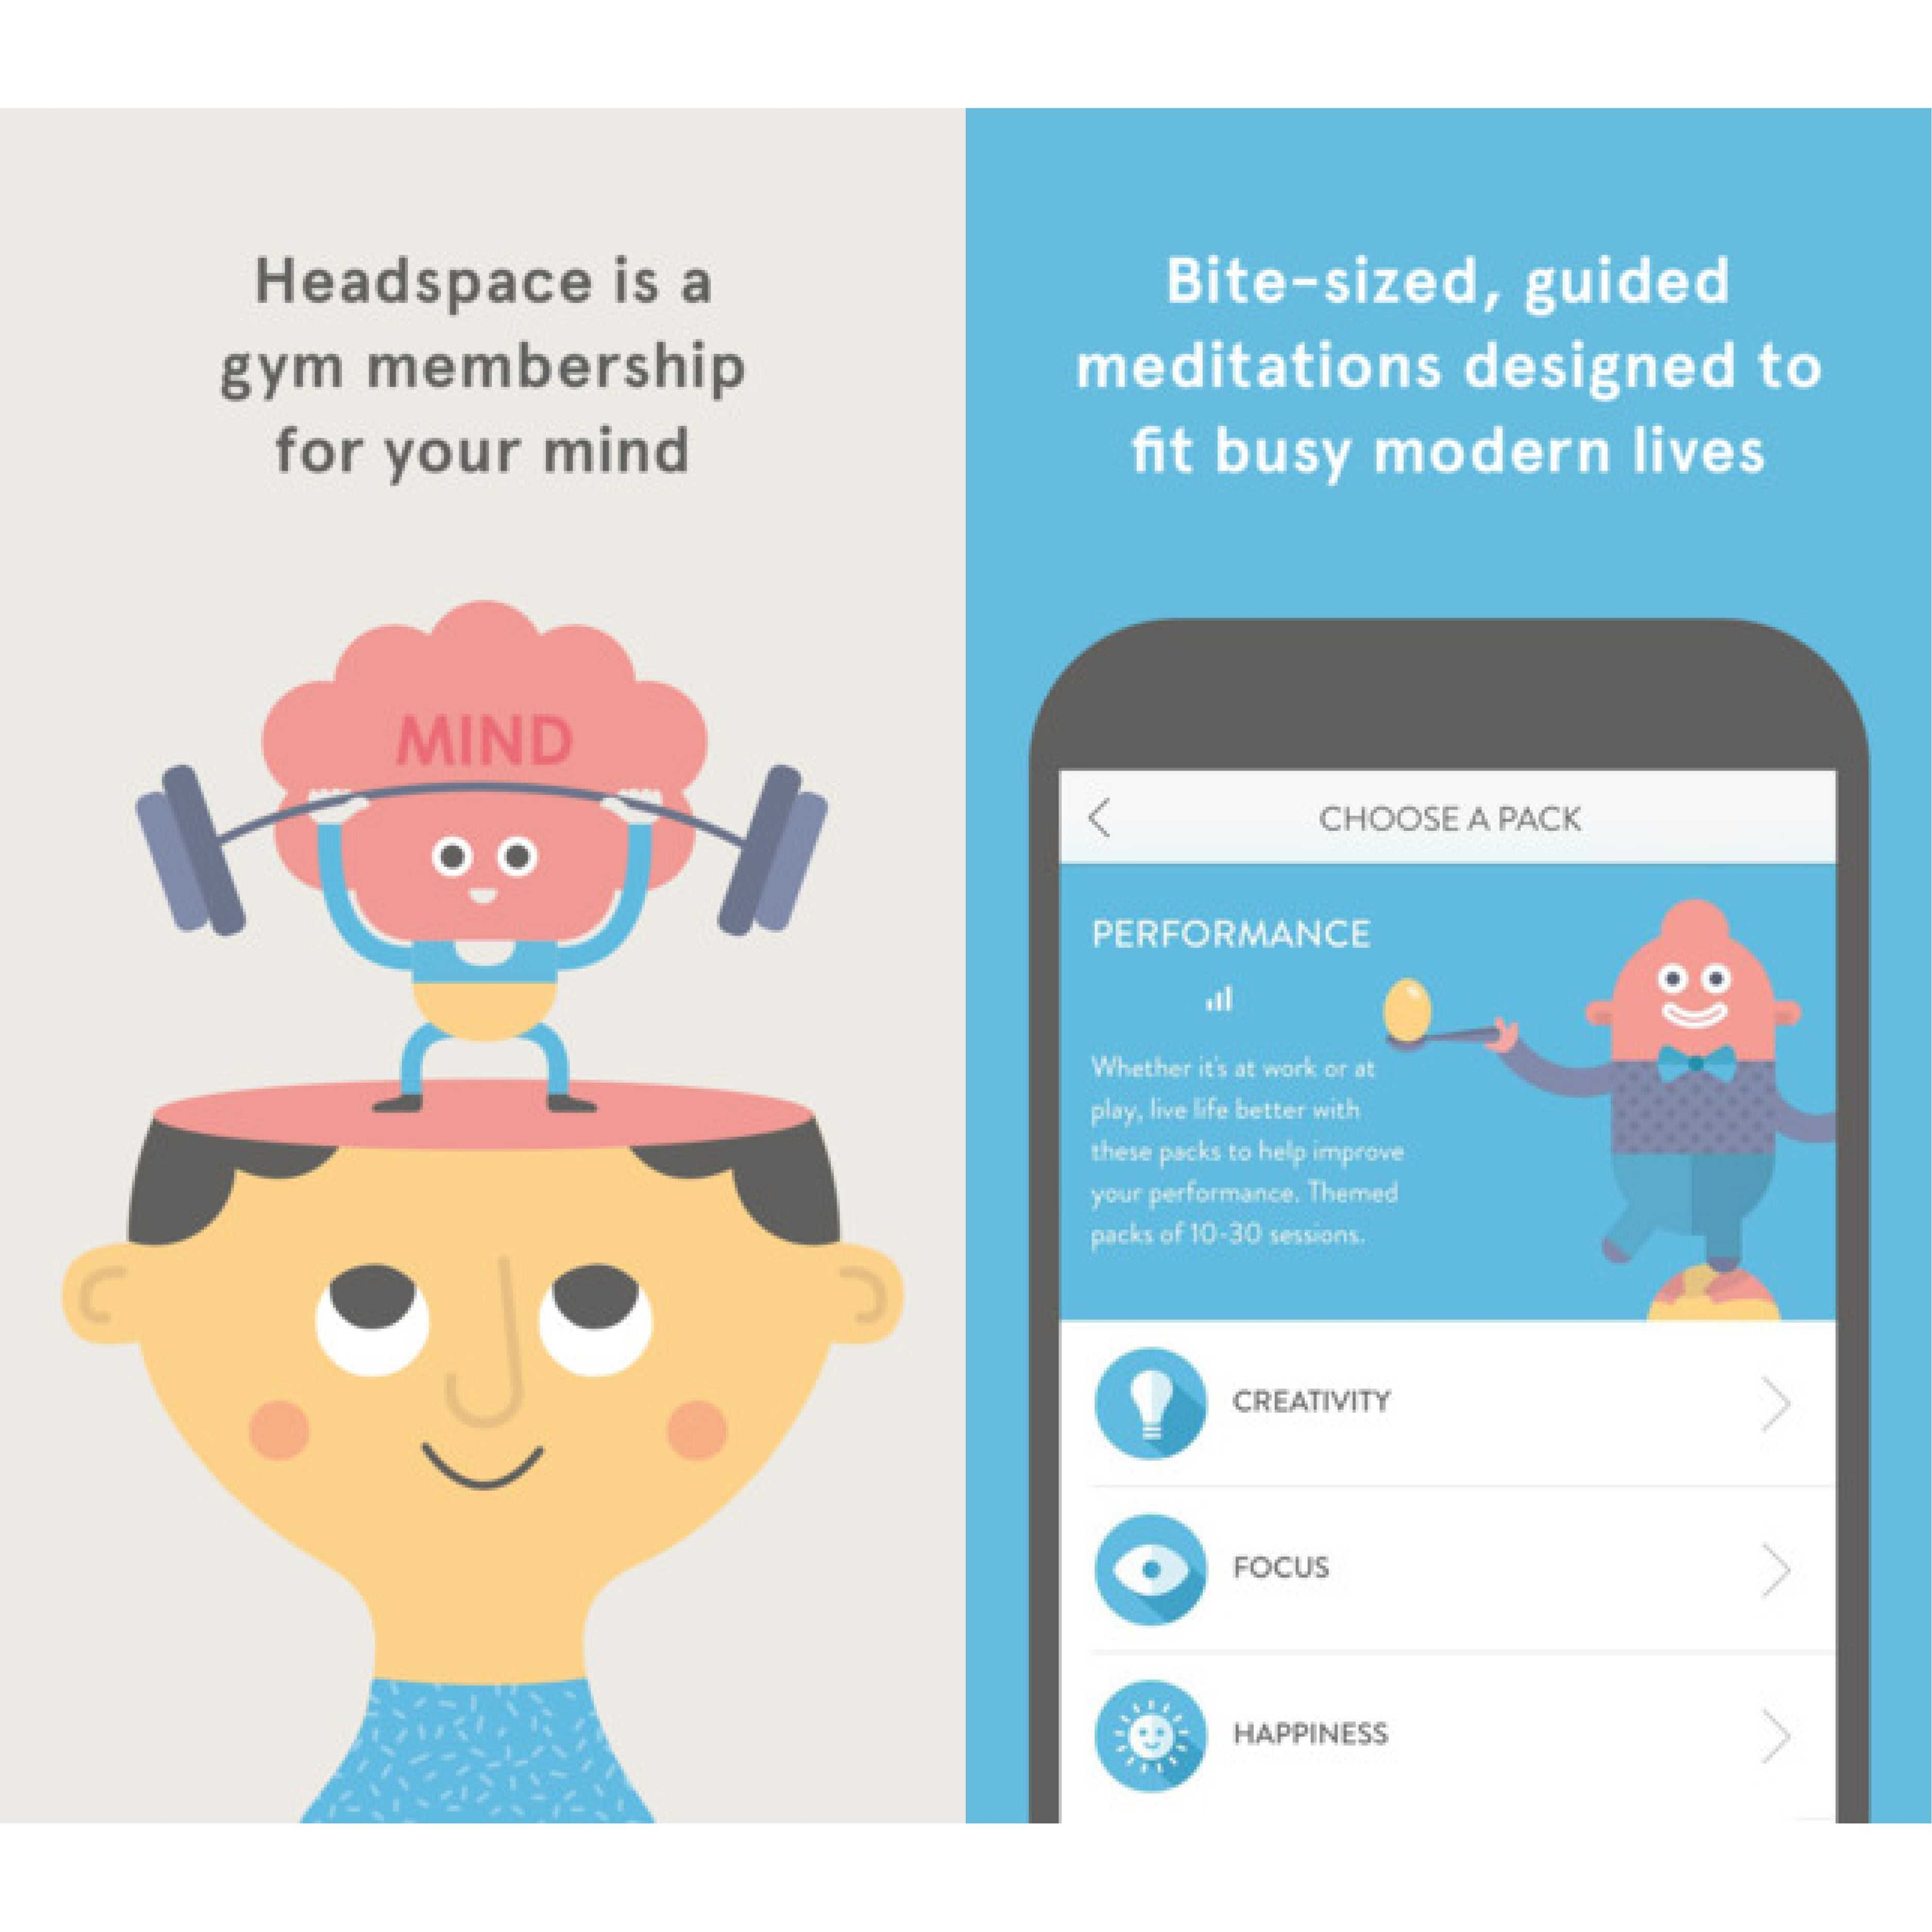 manage stress and anxiety through mindfulness: beginners' apps to